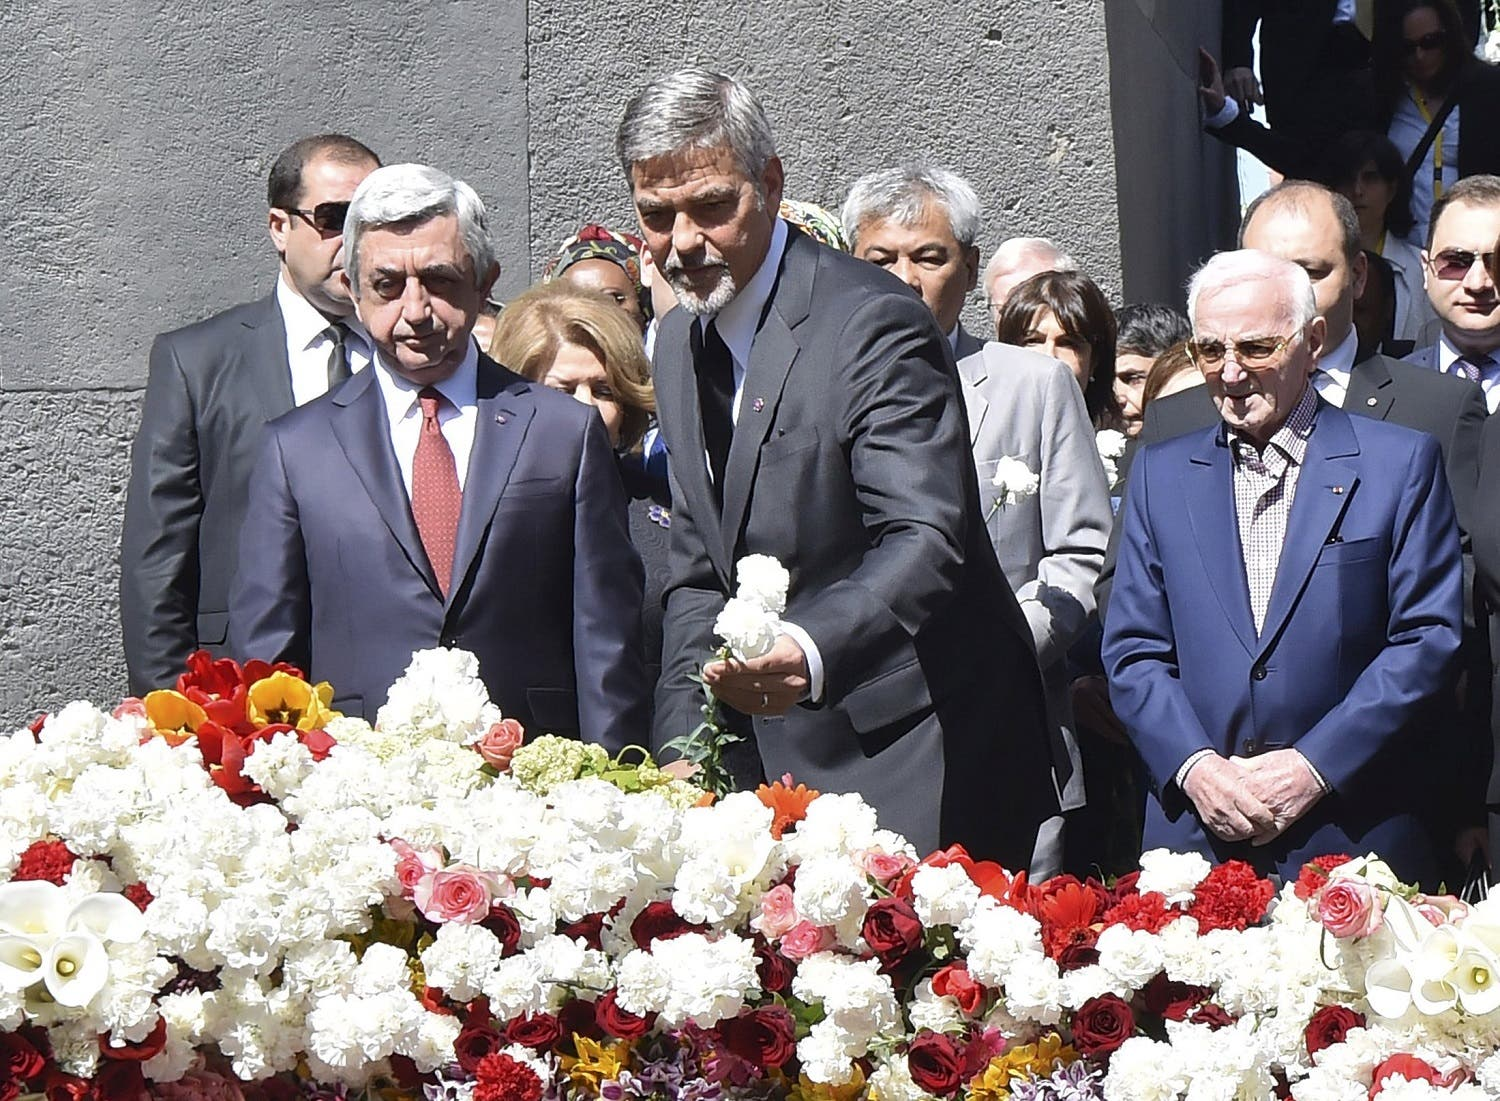 Armenia's President Sargsyan, actor Clooney and singer Aznavour attend a flower-laying ceremony at the Tsitsernakaberd Armenian Genocide Memorial Museum in Yerevan. (Reuters)